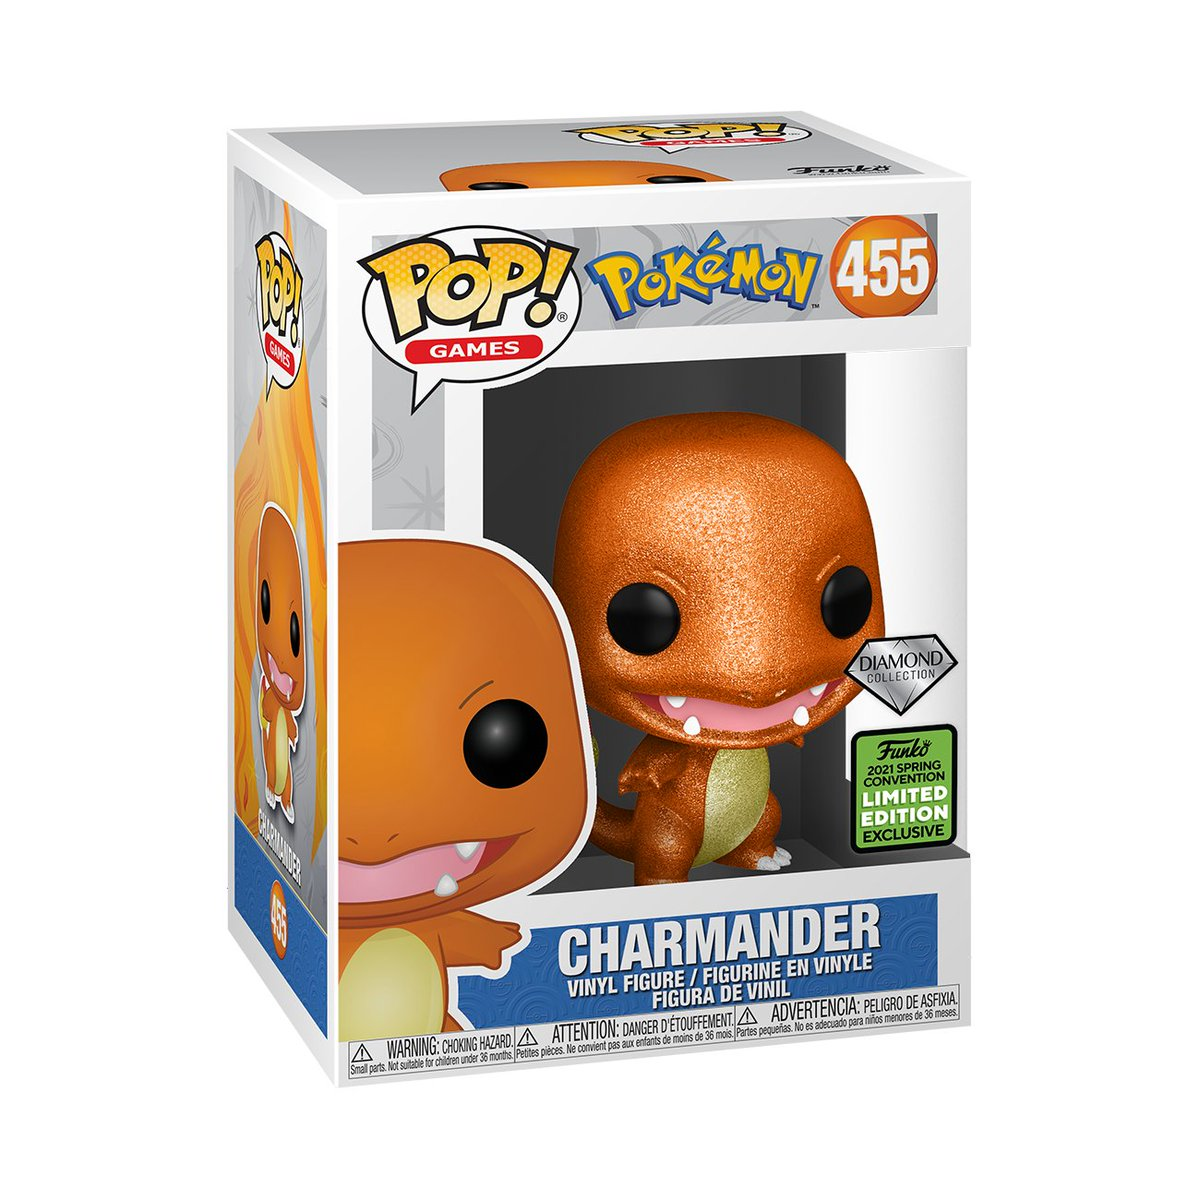 RT & follow @OriginalFunko for the chance to WIN this Spring Convention Diamond Collection Charmander Pop! #Funko #FunkoGiveaway #Giveaway #Pokemon